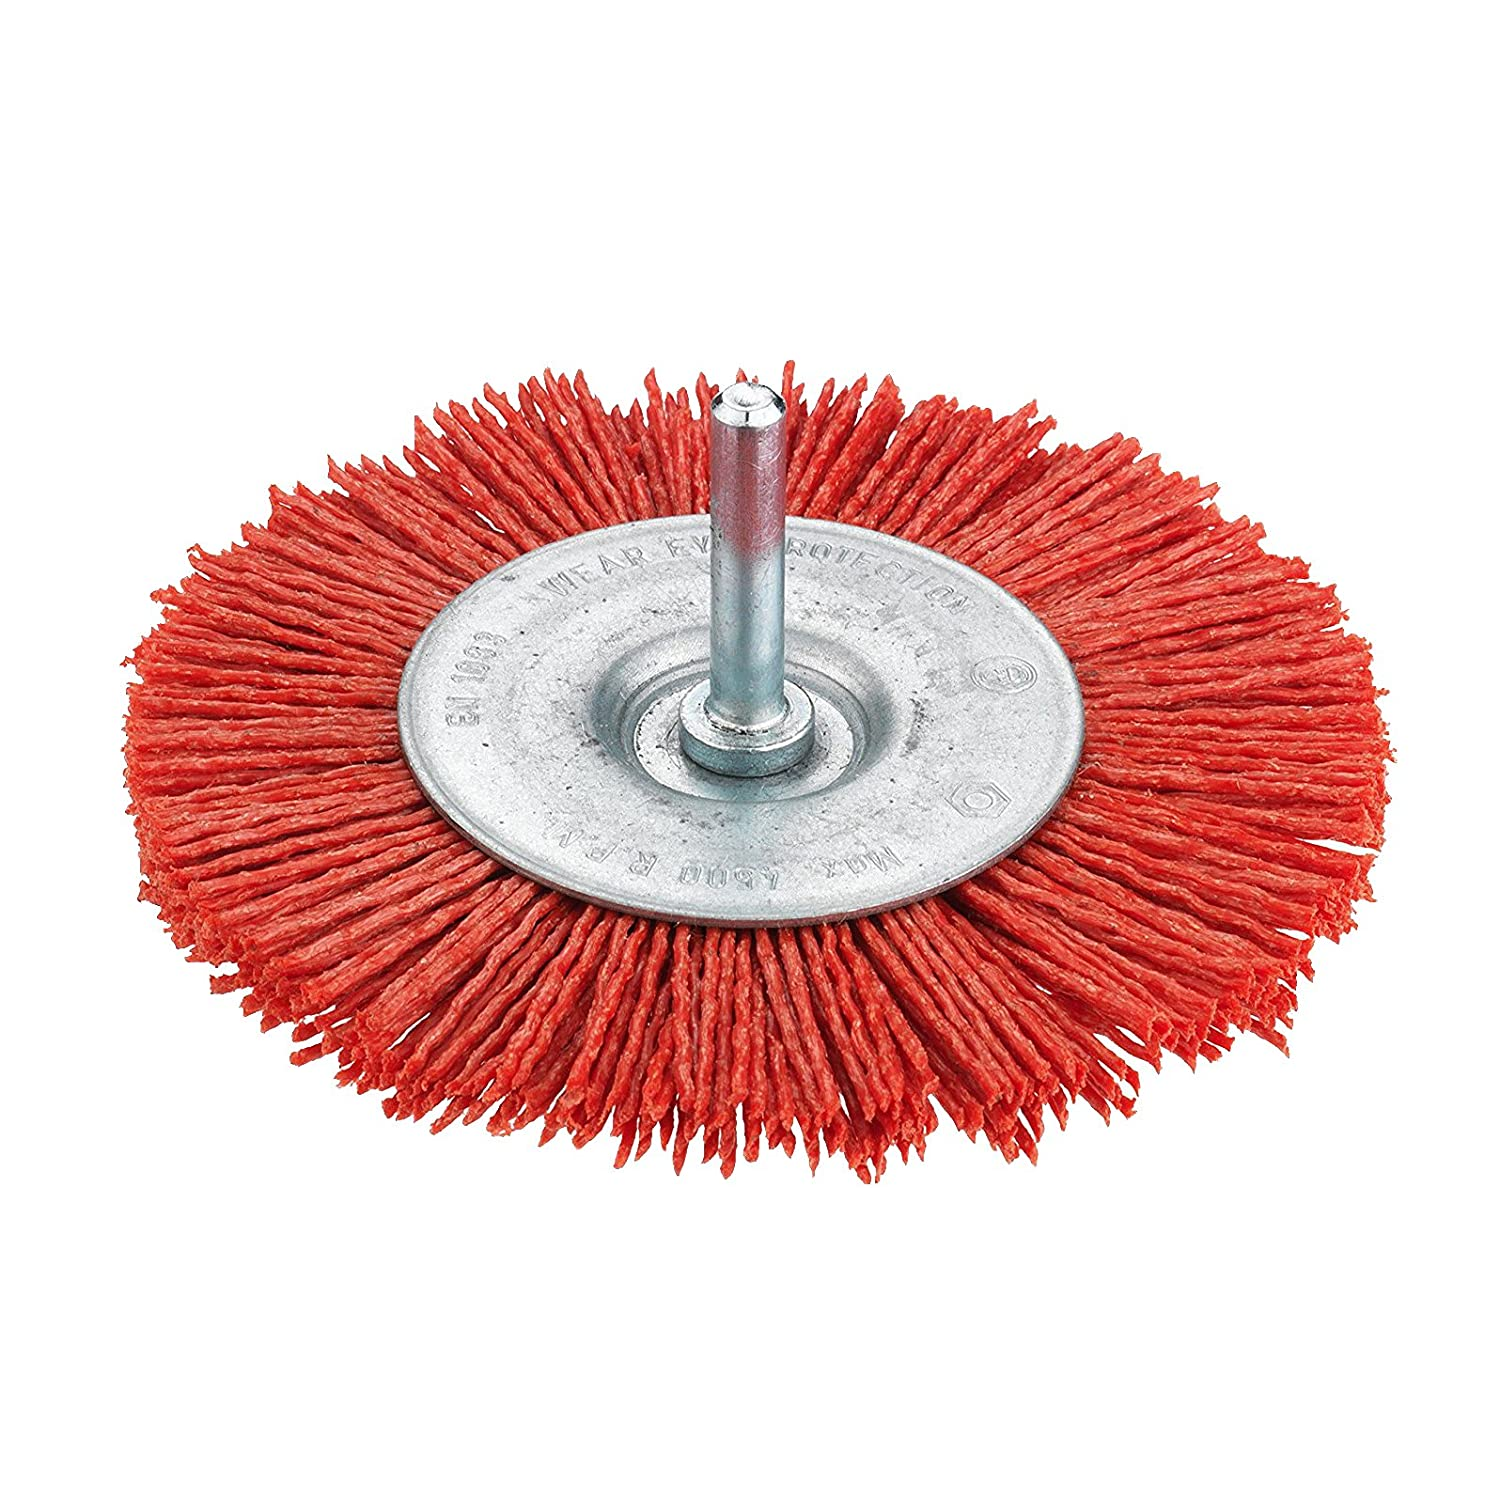 Connex COM217075 Rotary Wire Cup Brush of Nylon, Red/Silver, 75 mm Conmetall